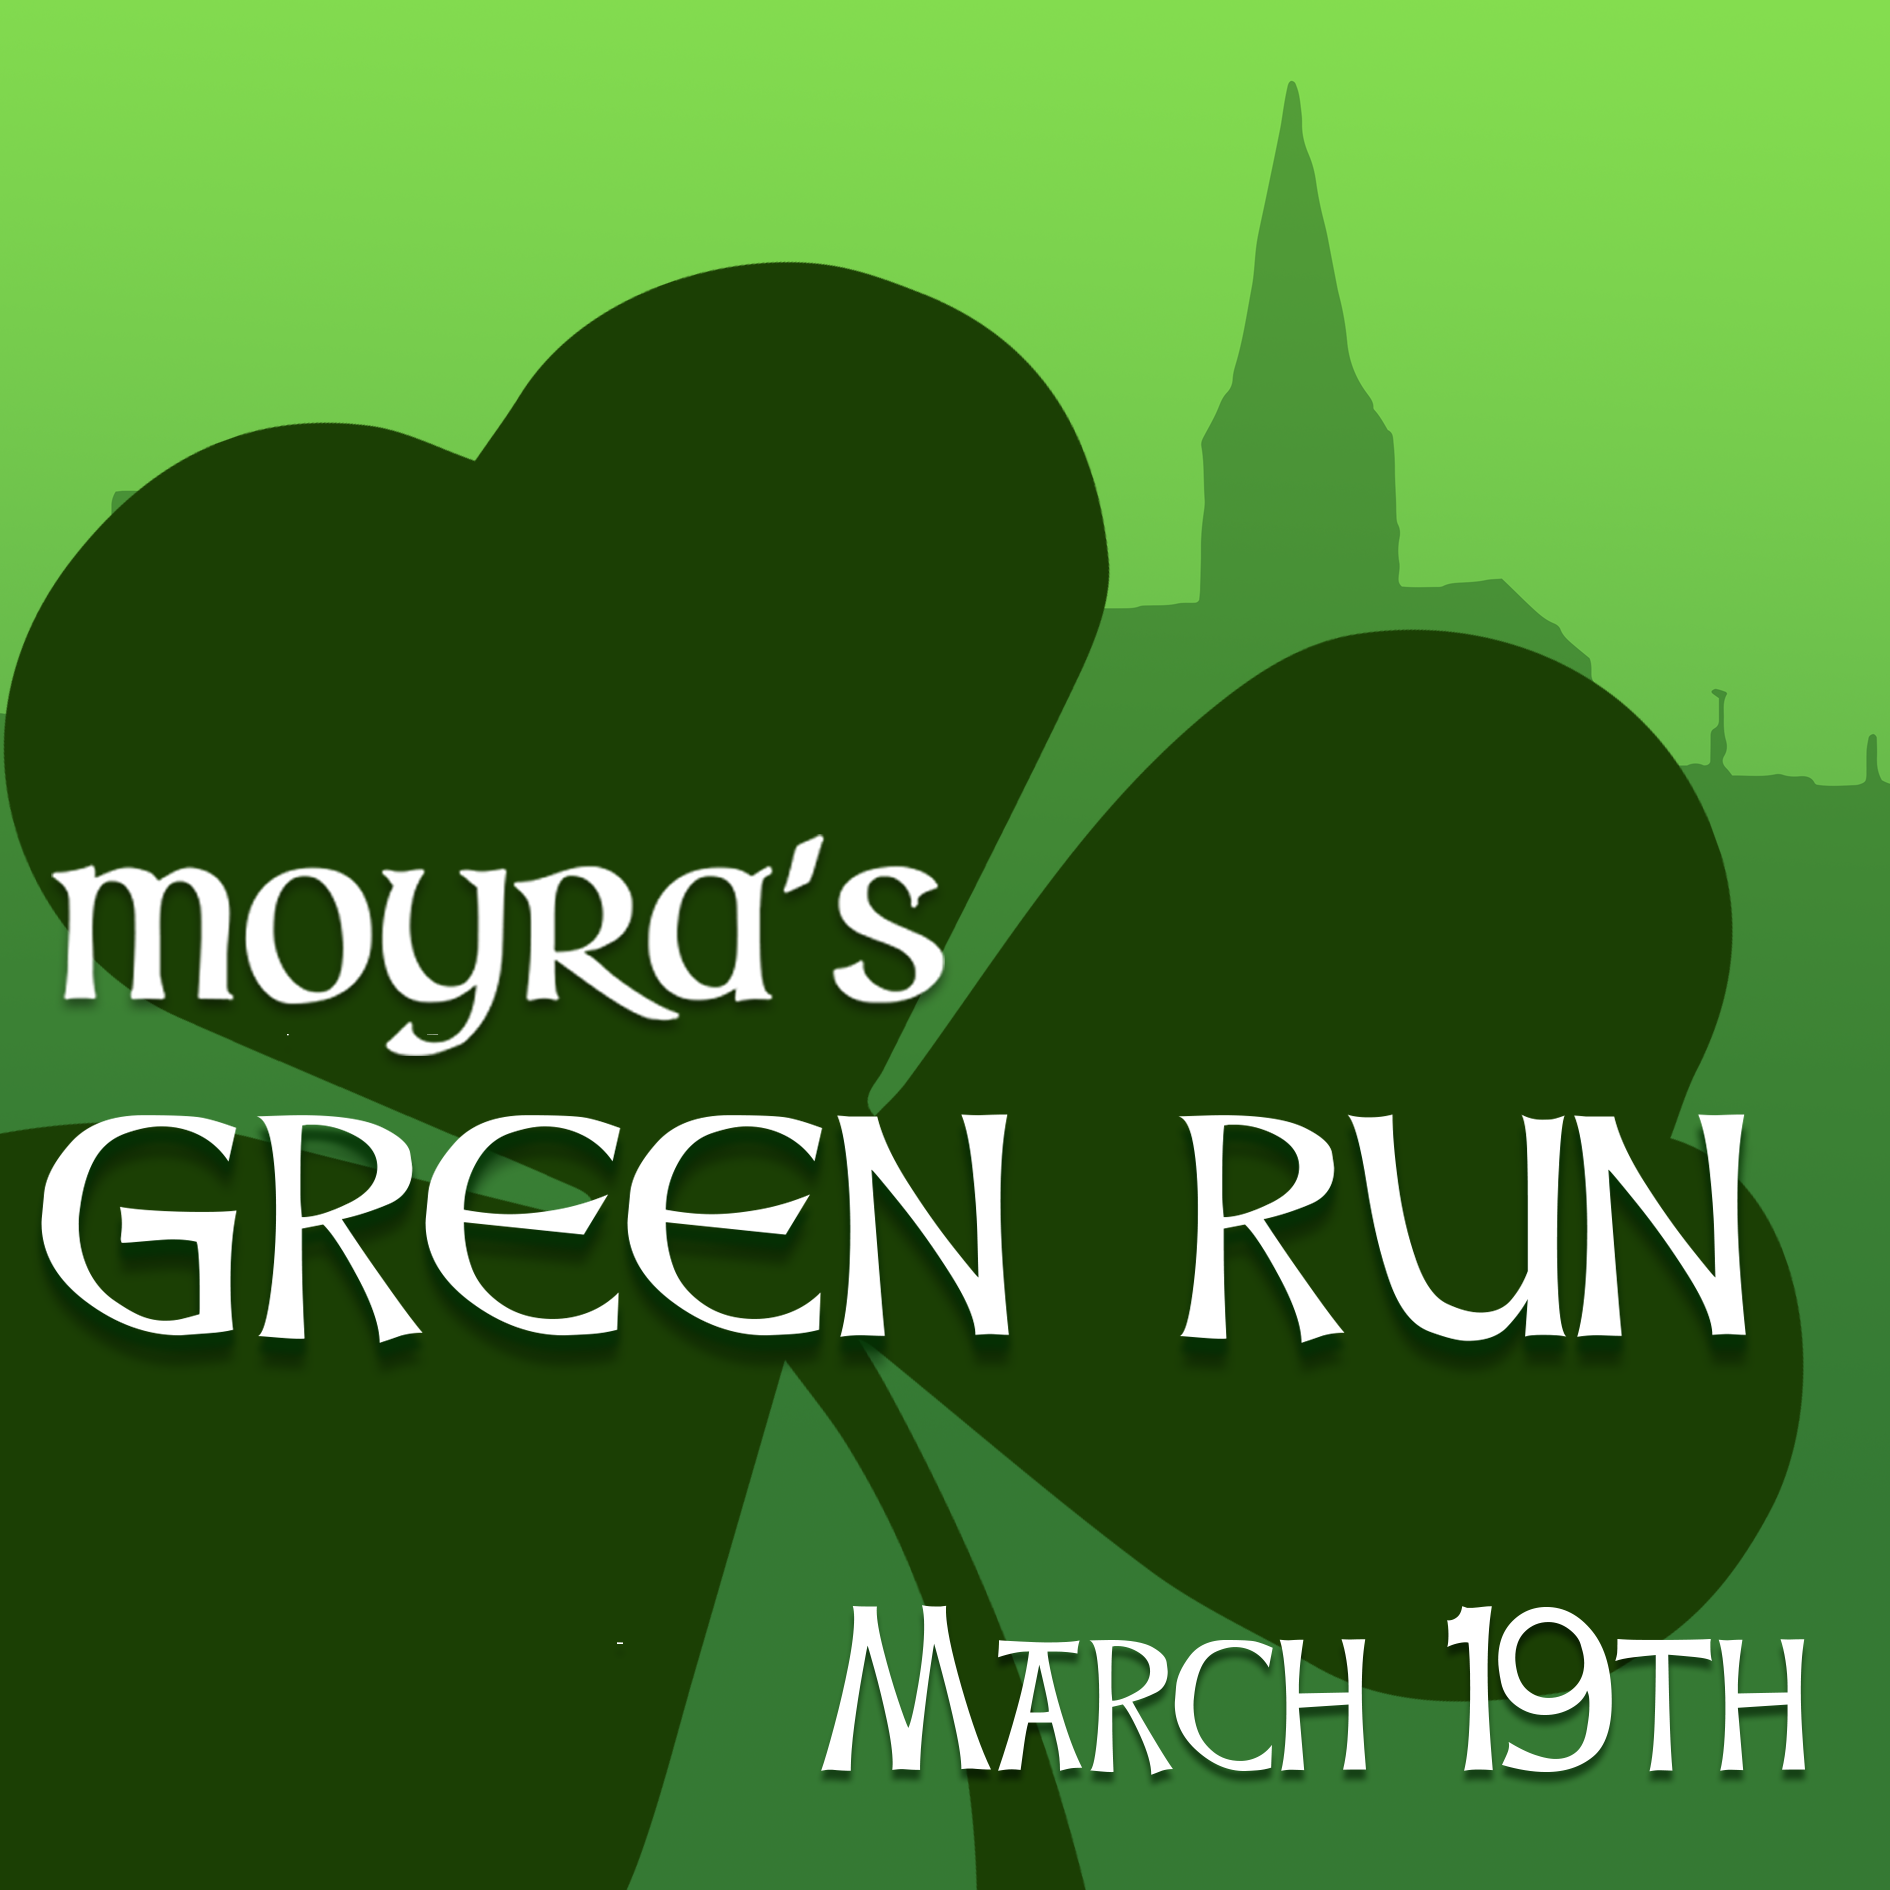 Moyra's Green Run - Profile (2)